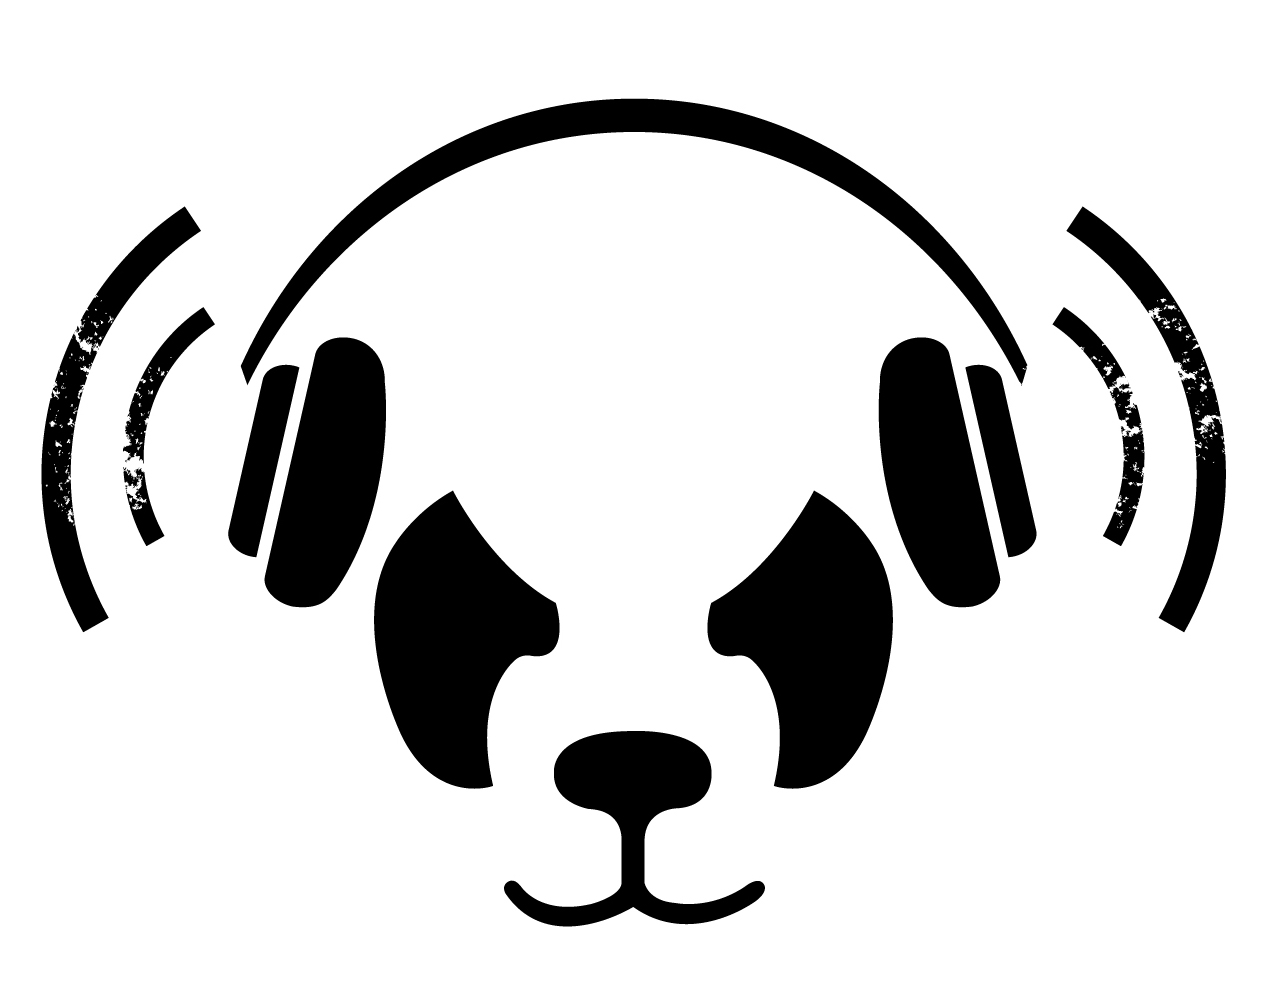 Panda Logo http://simplybeats.wordpress.com/2011/04/06/the-white-panda-steal-eastwood/